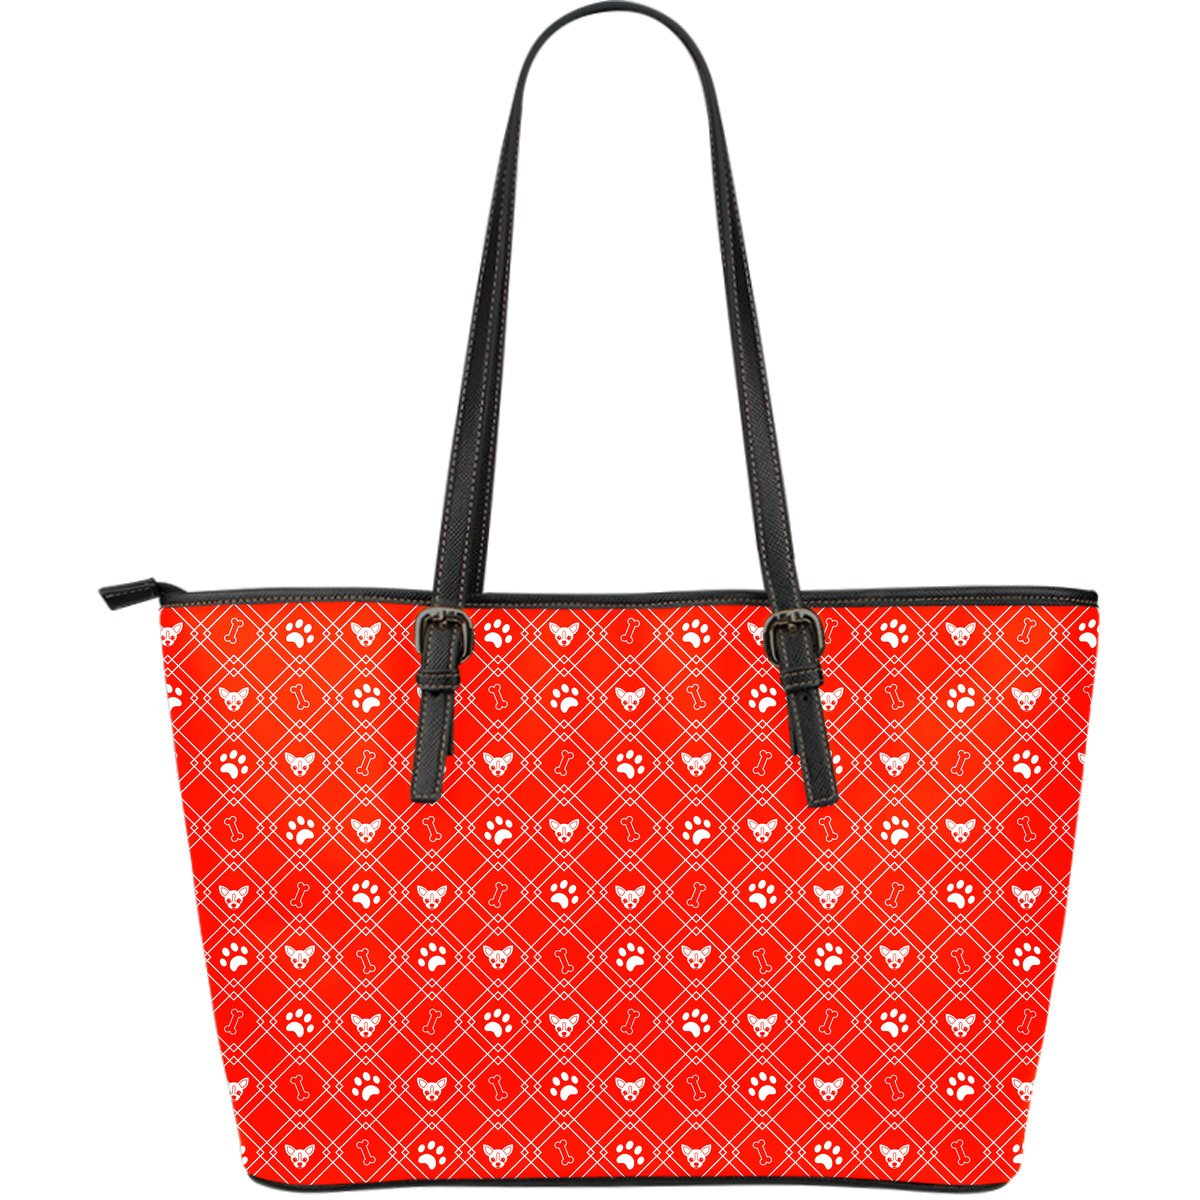 Red Dog Lover Large Leather Tote-DogsTailCircle